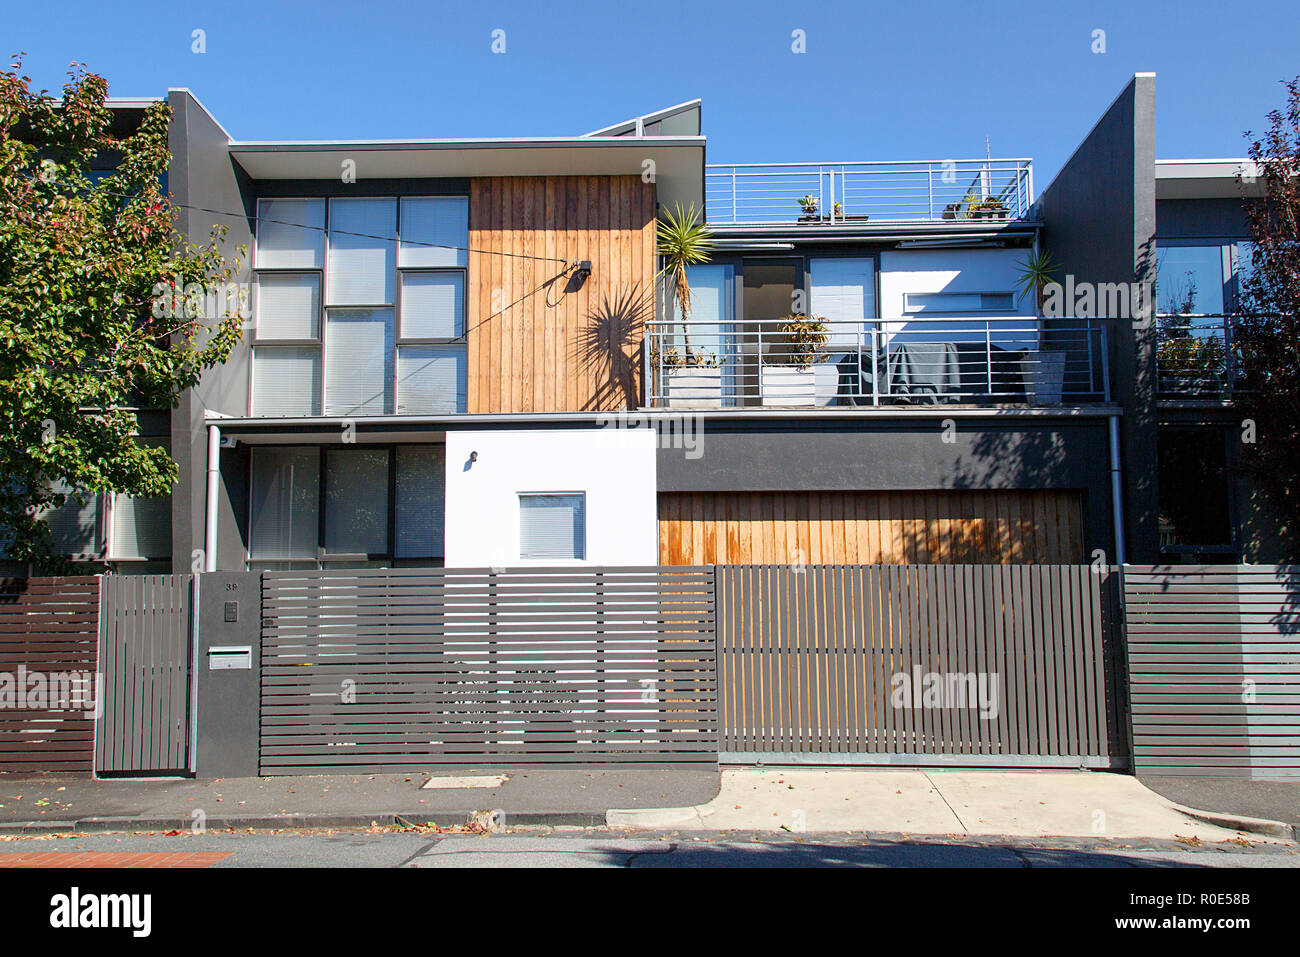 Melbourne Australien 04 April 2018 Modernes Einfamilienhaus In